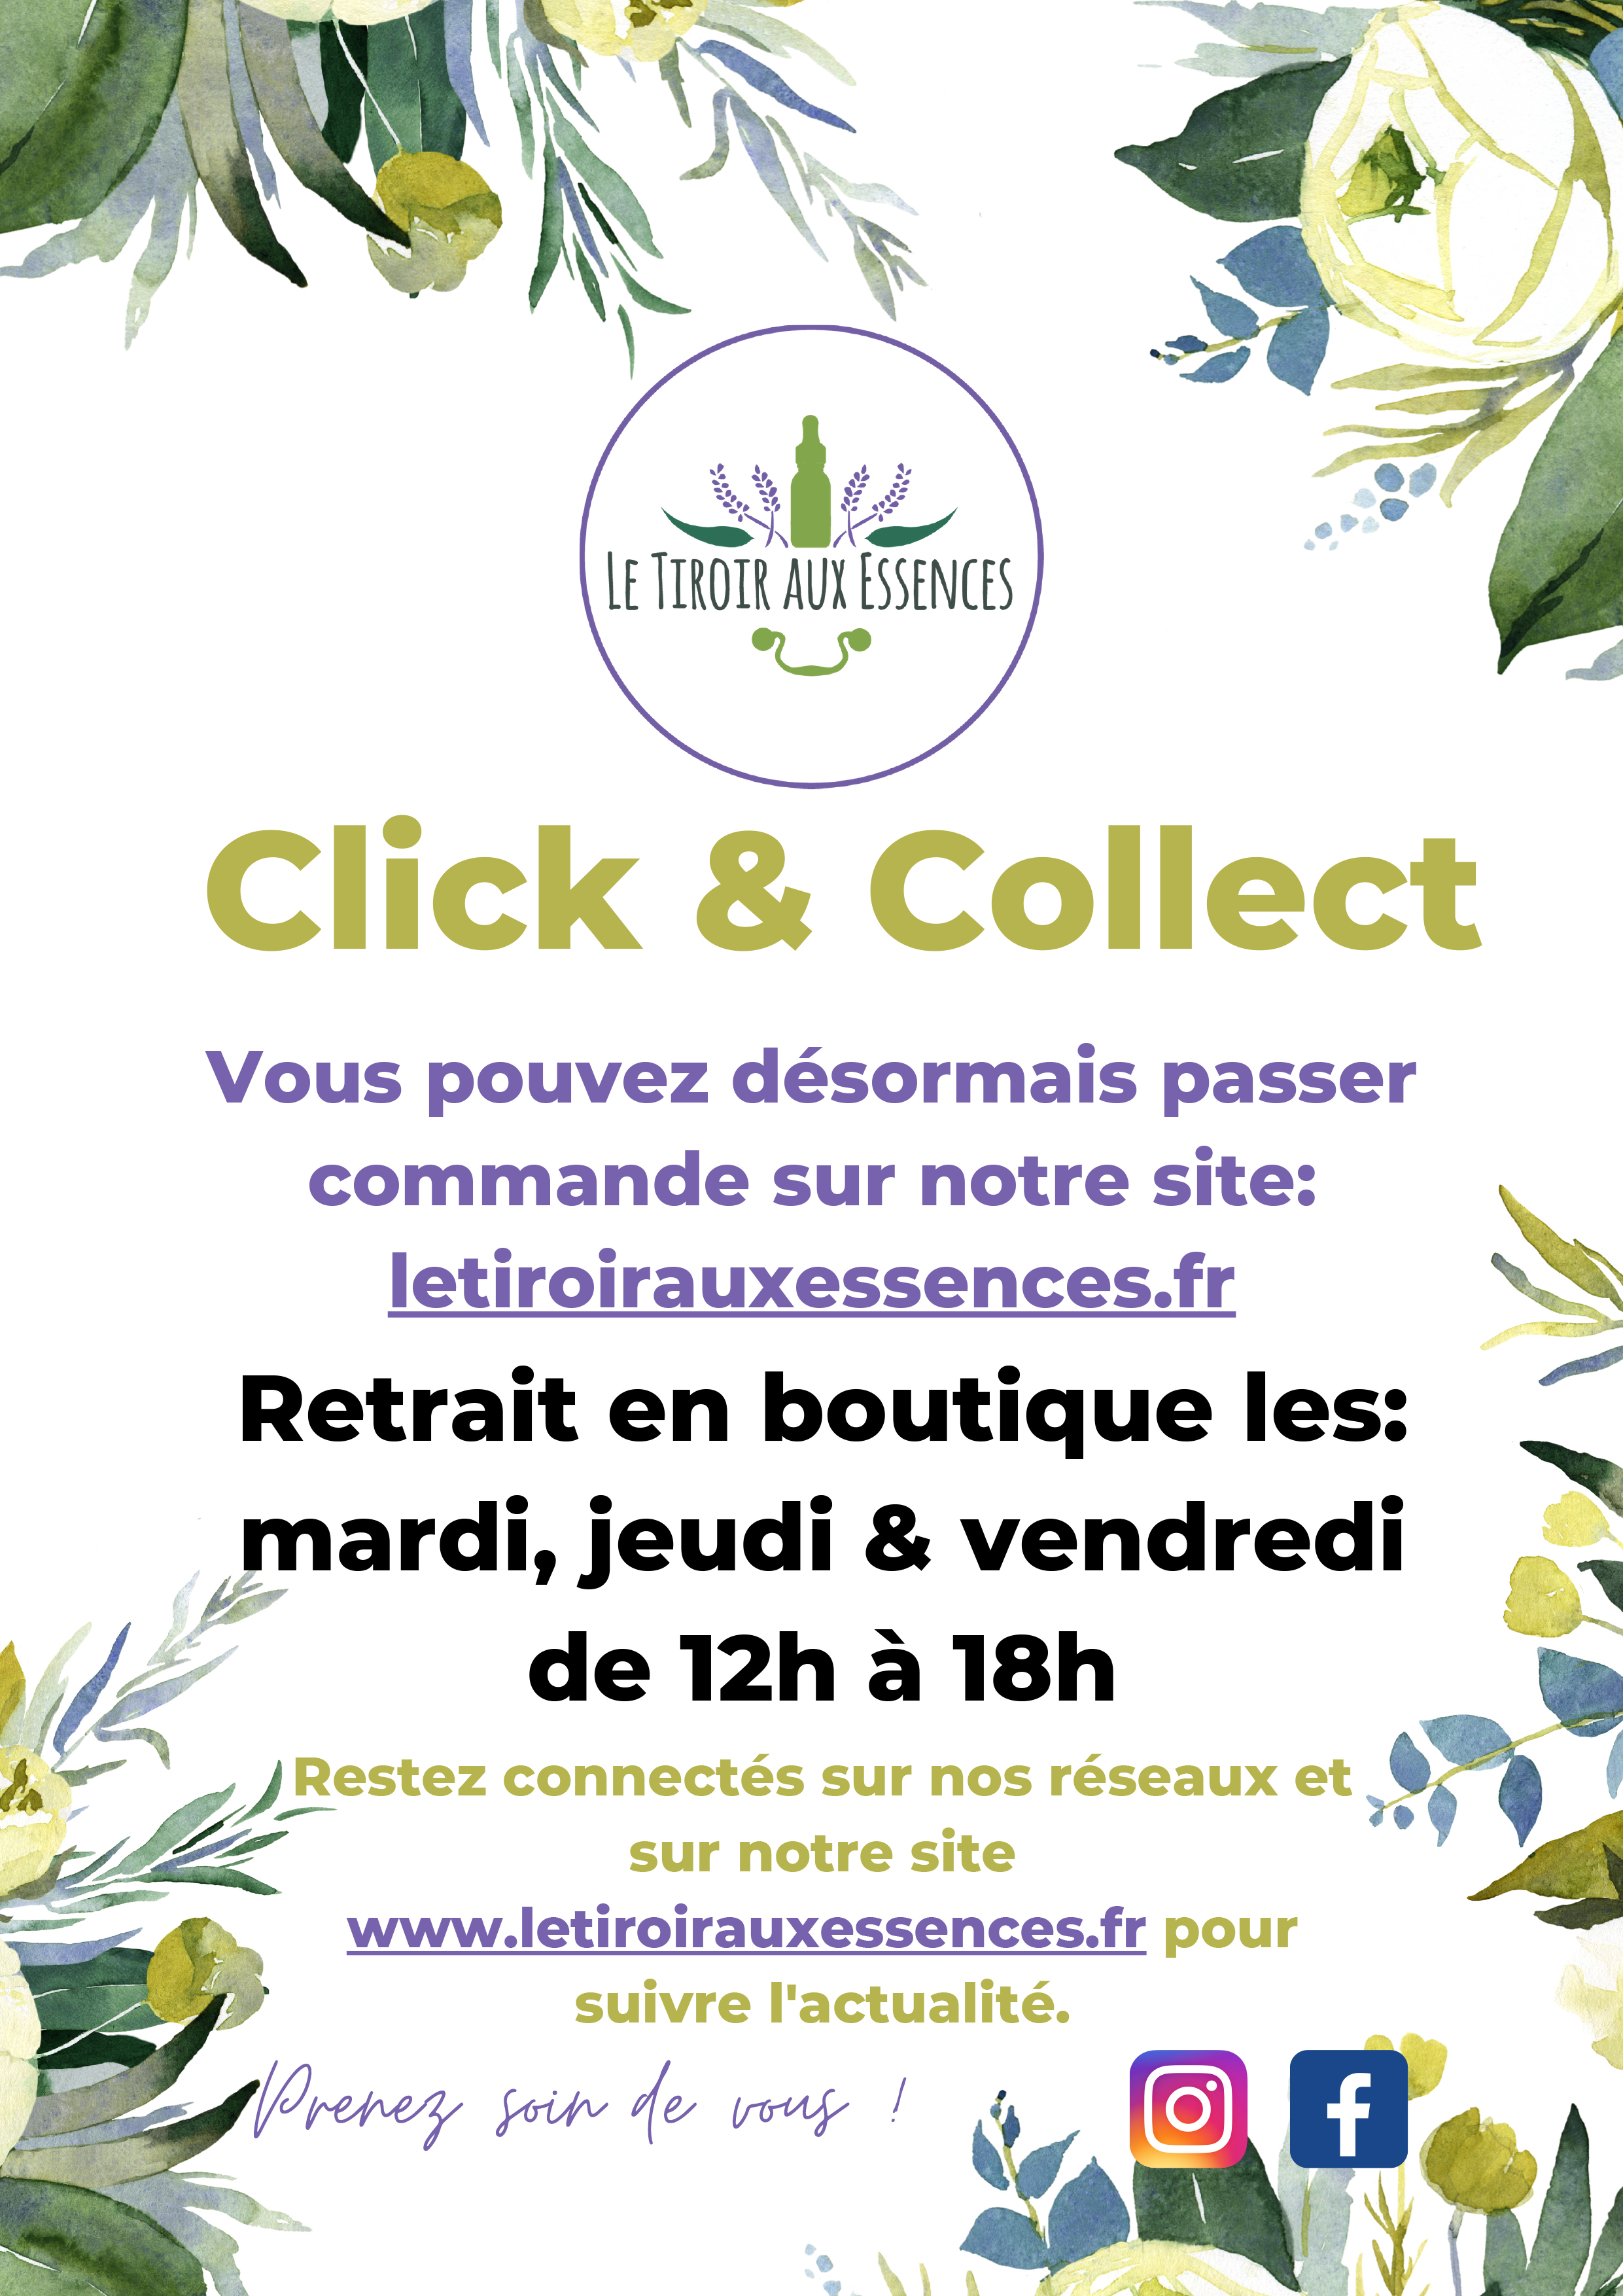 Creneaux%20Click%20&%20Collect.jpg